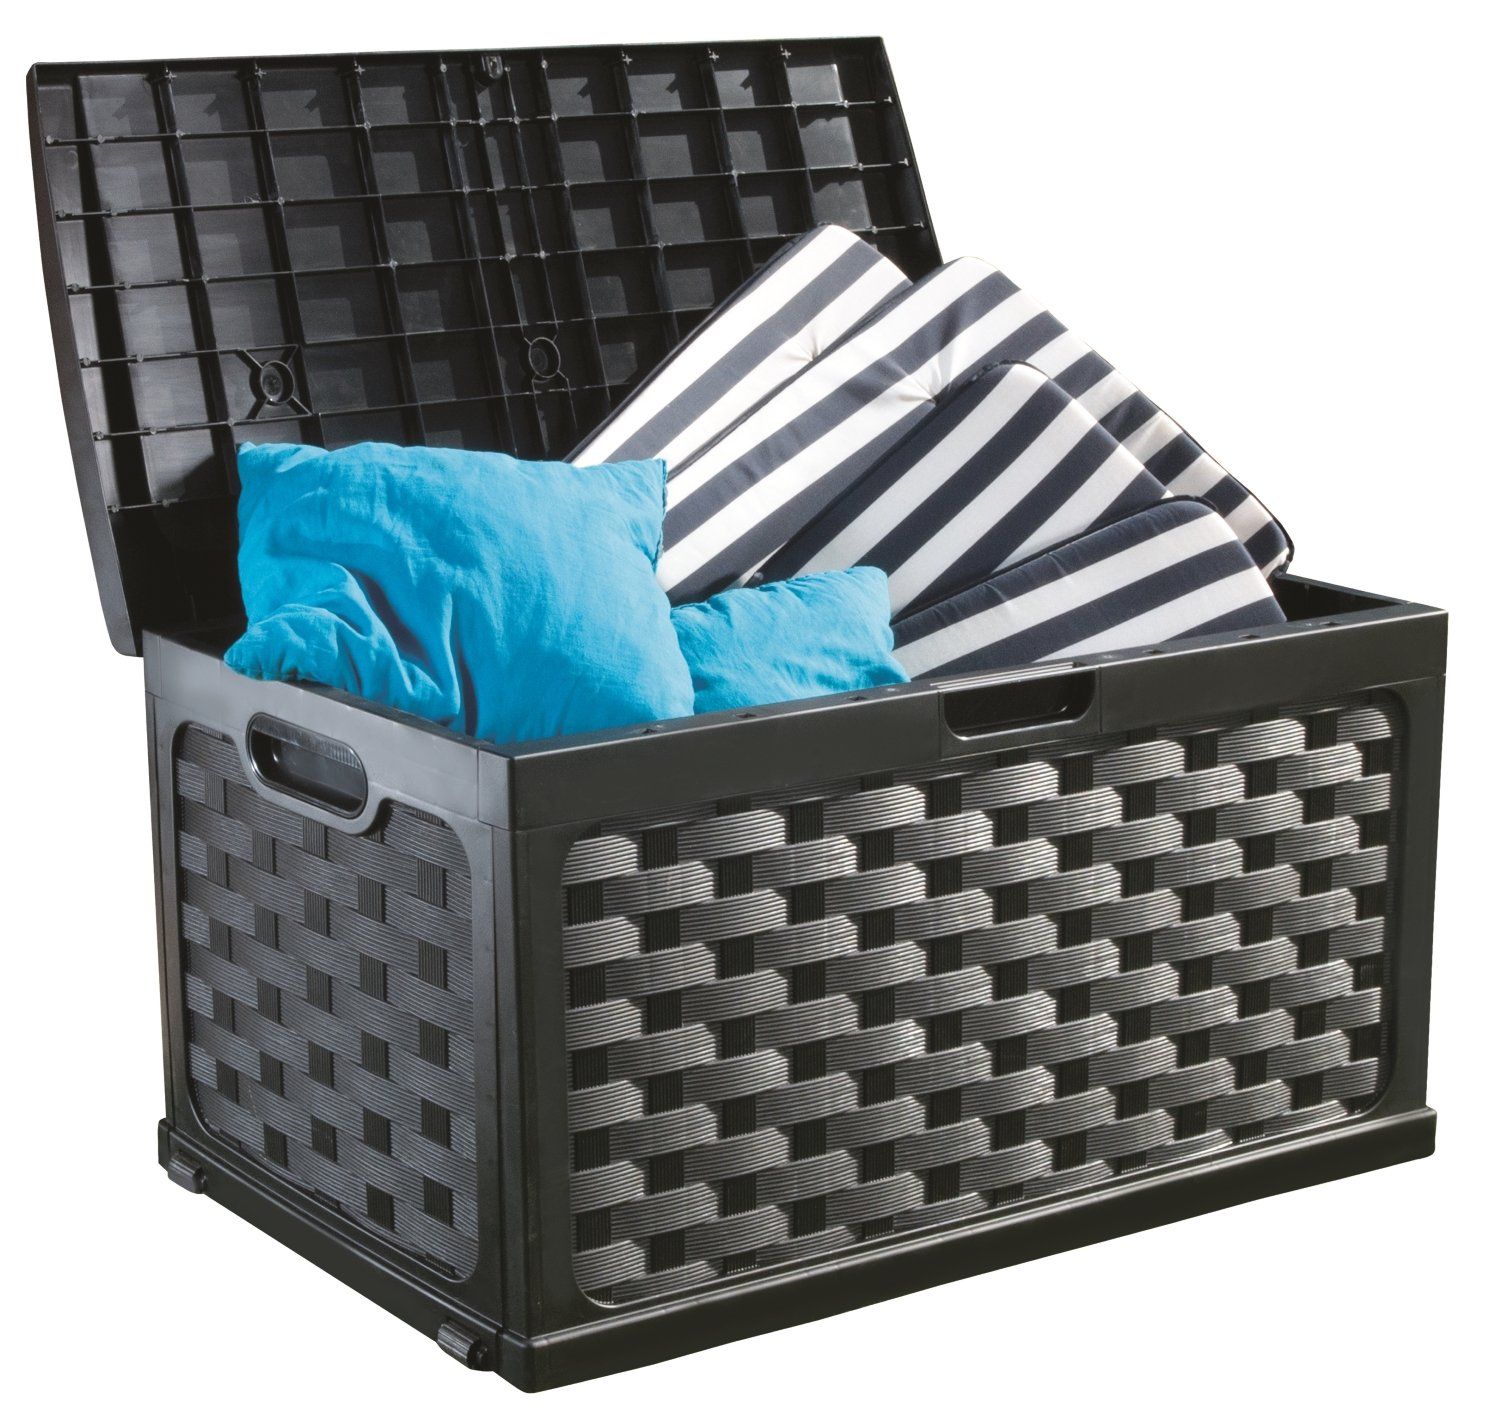 Starplast Rattan Deck Box, 71 gallon, Black/Black 49811